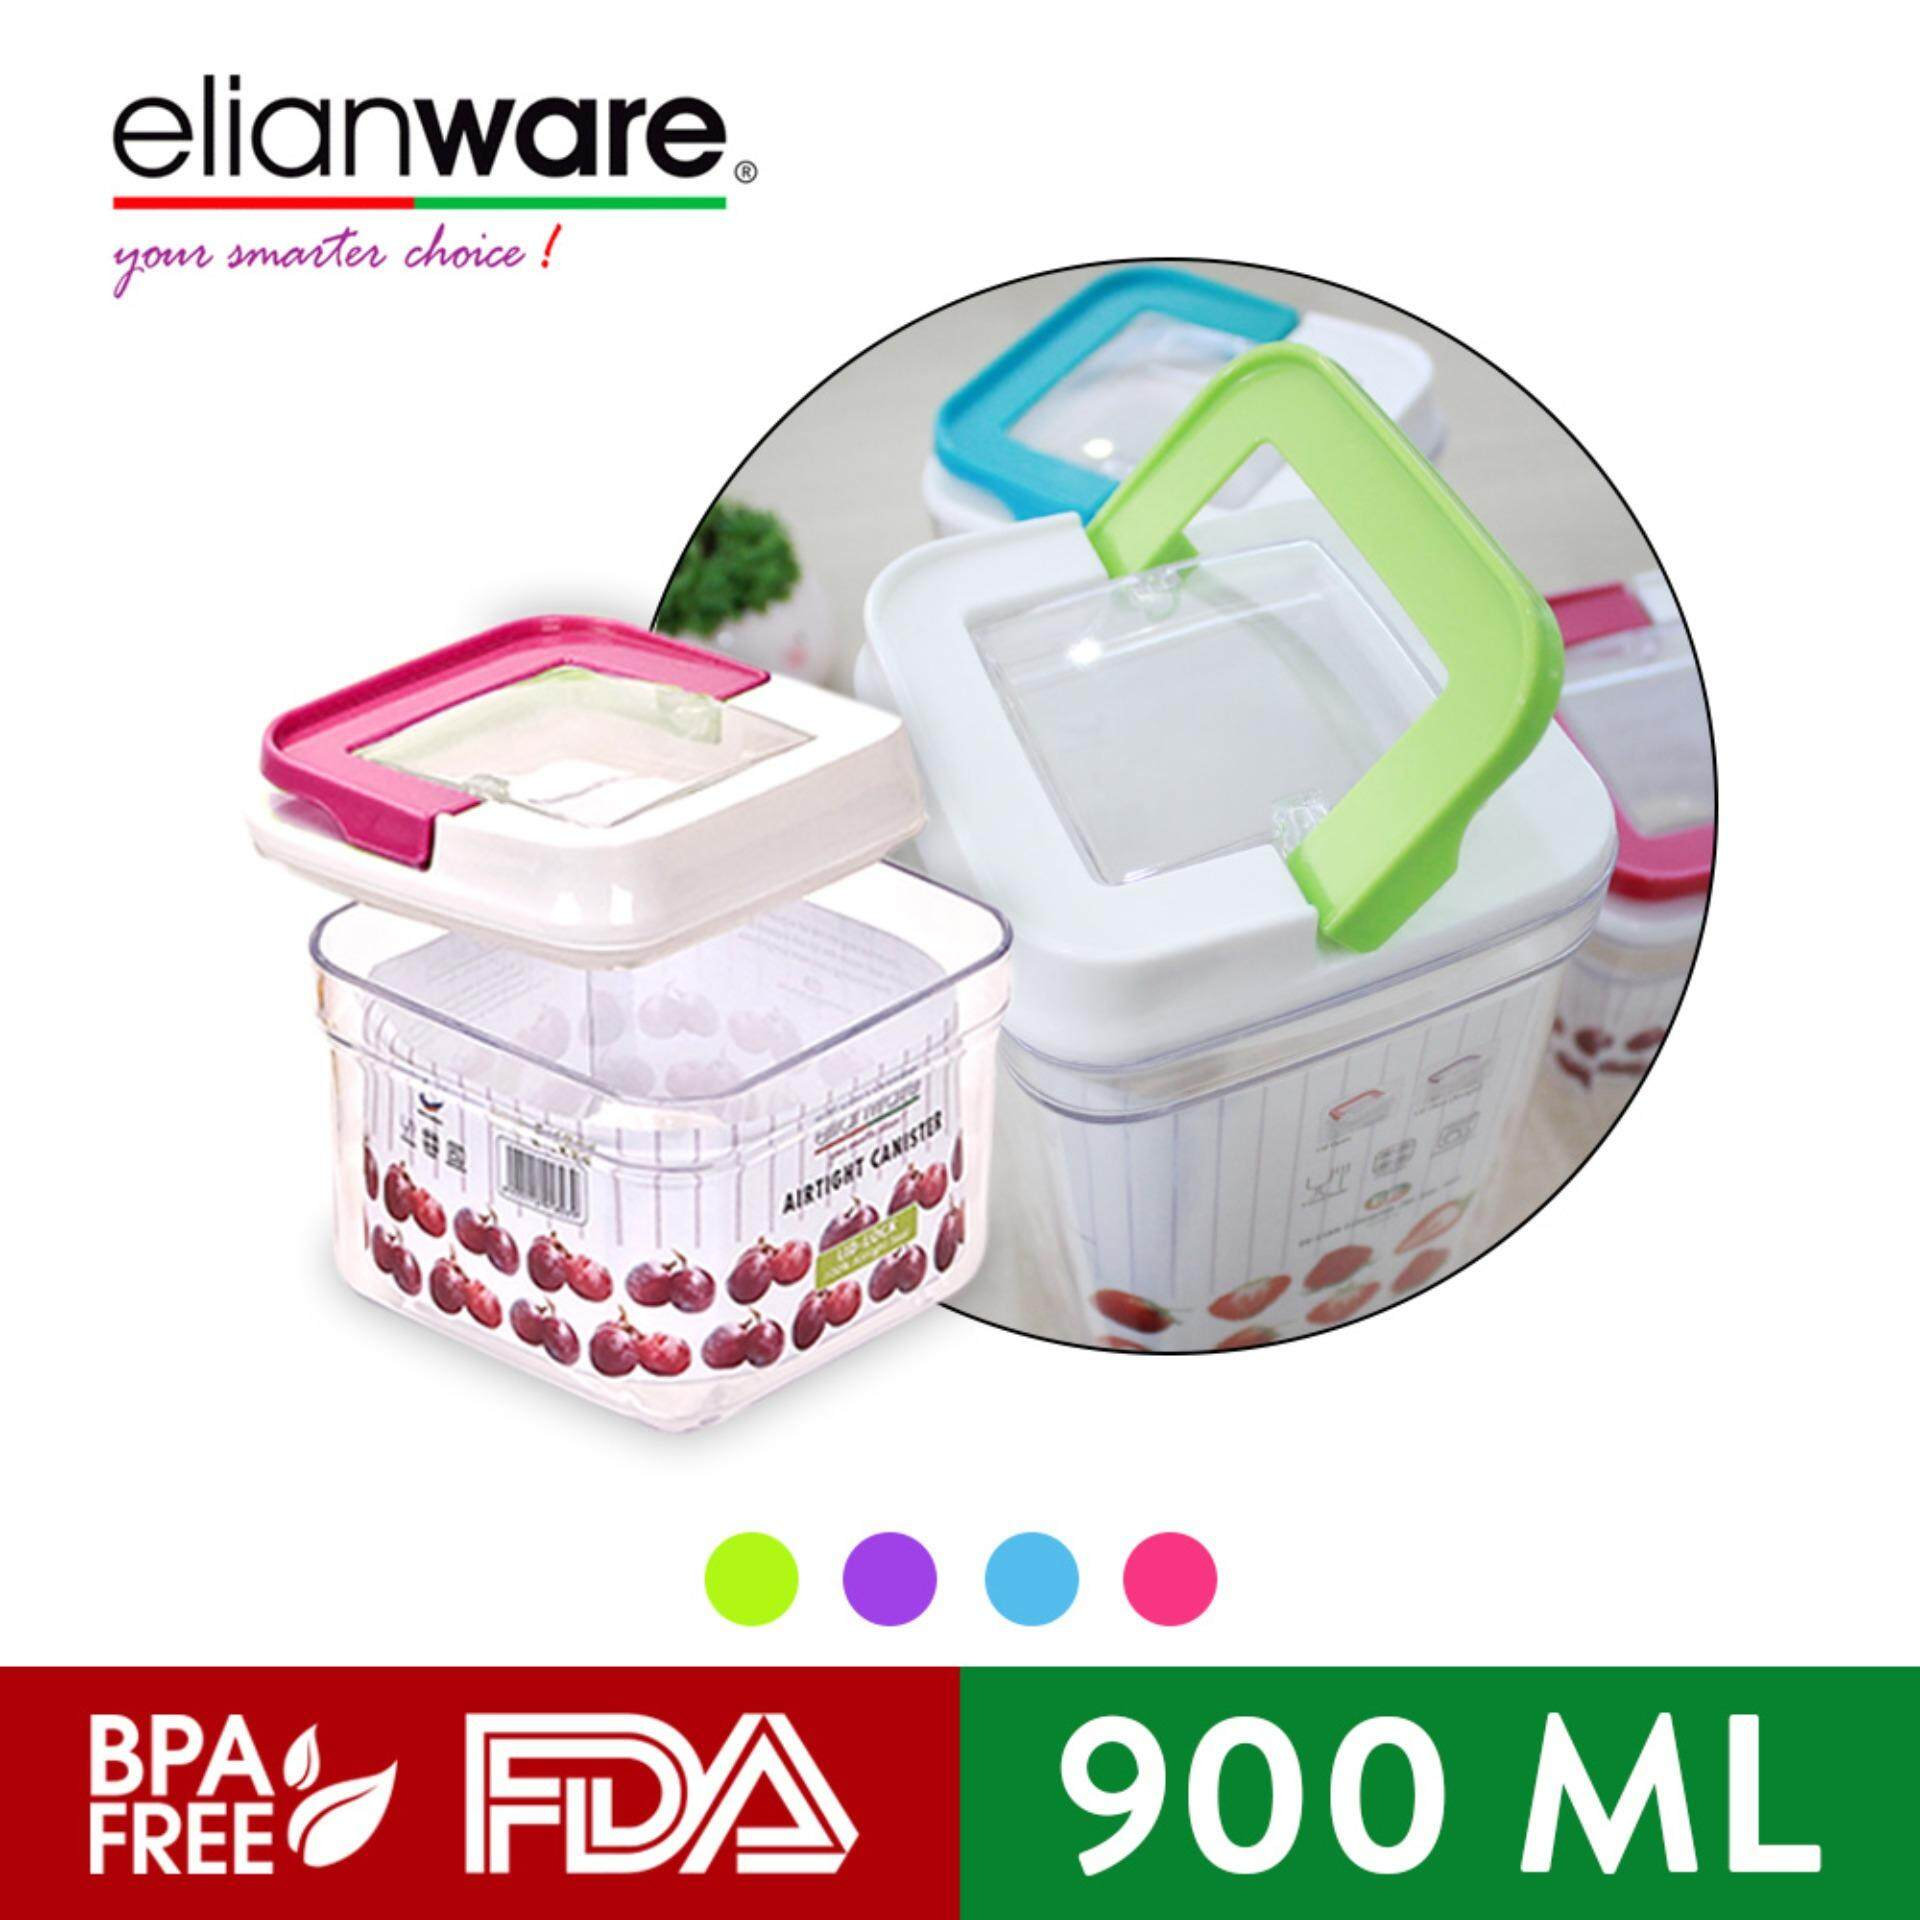 Elianware 900ml Elegant Glass-Like Airtight Canister Clear Container Multipurpose Food Storage Keeper Box